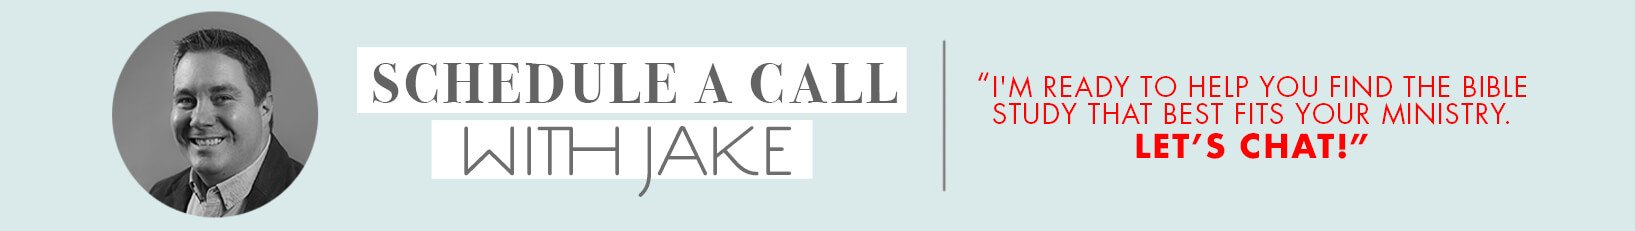 Schedule a call with Jake to take about your youth ministry Bible study.